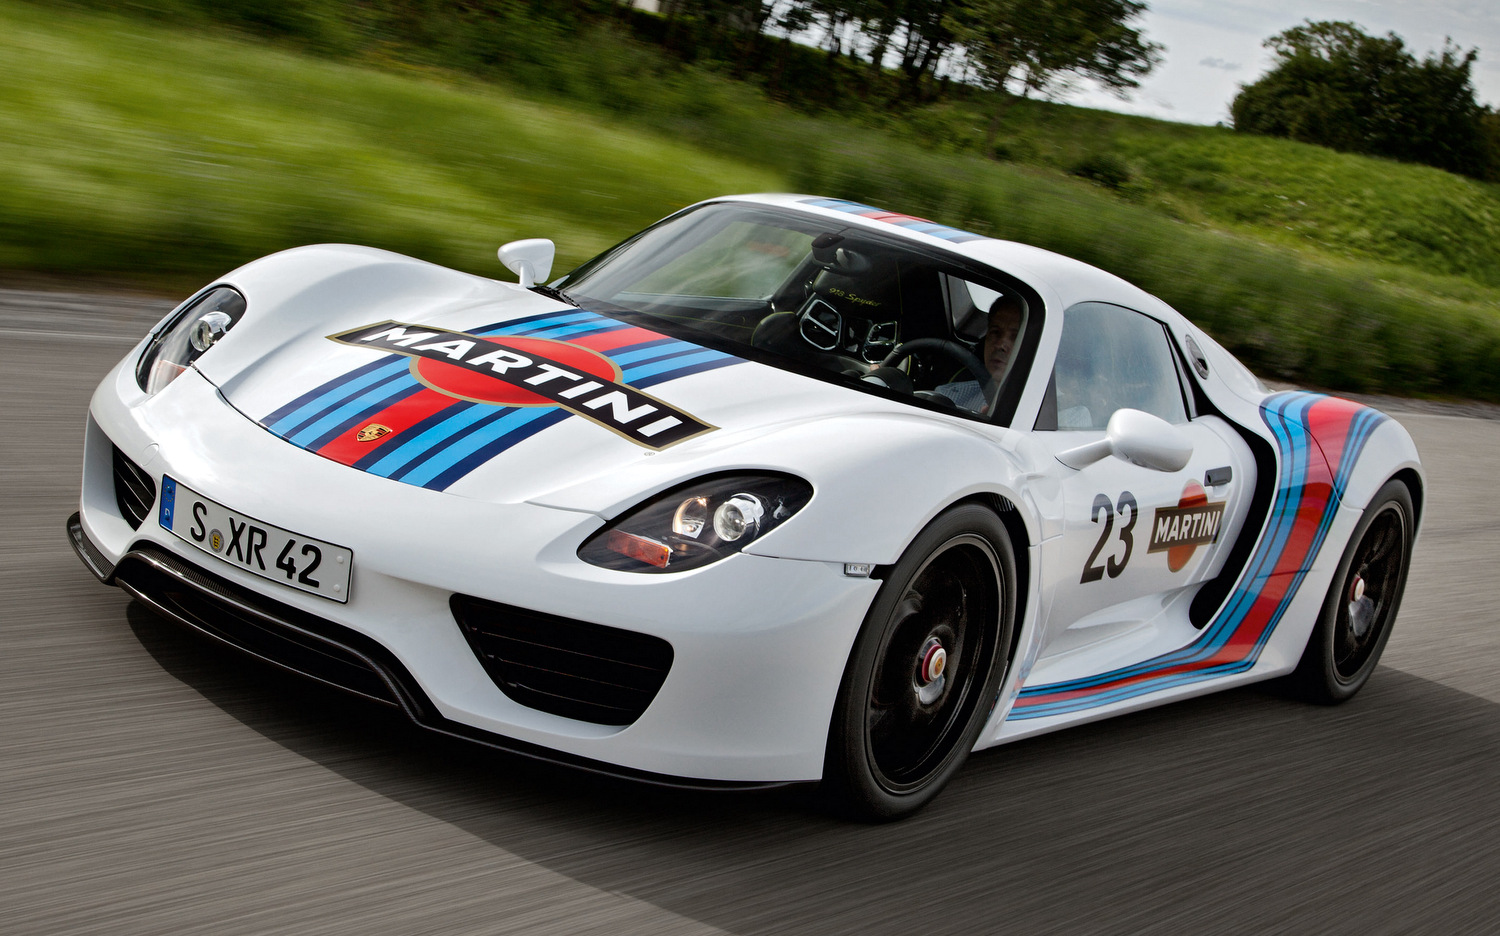 porsche 918 spyder testing in iconic martini livery the driven blog. Black Bedroom Furniture Sets. Home Design Ideas